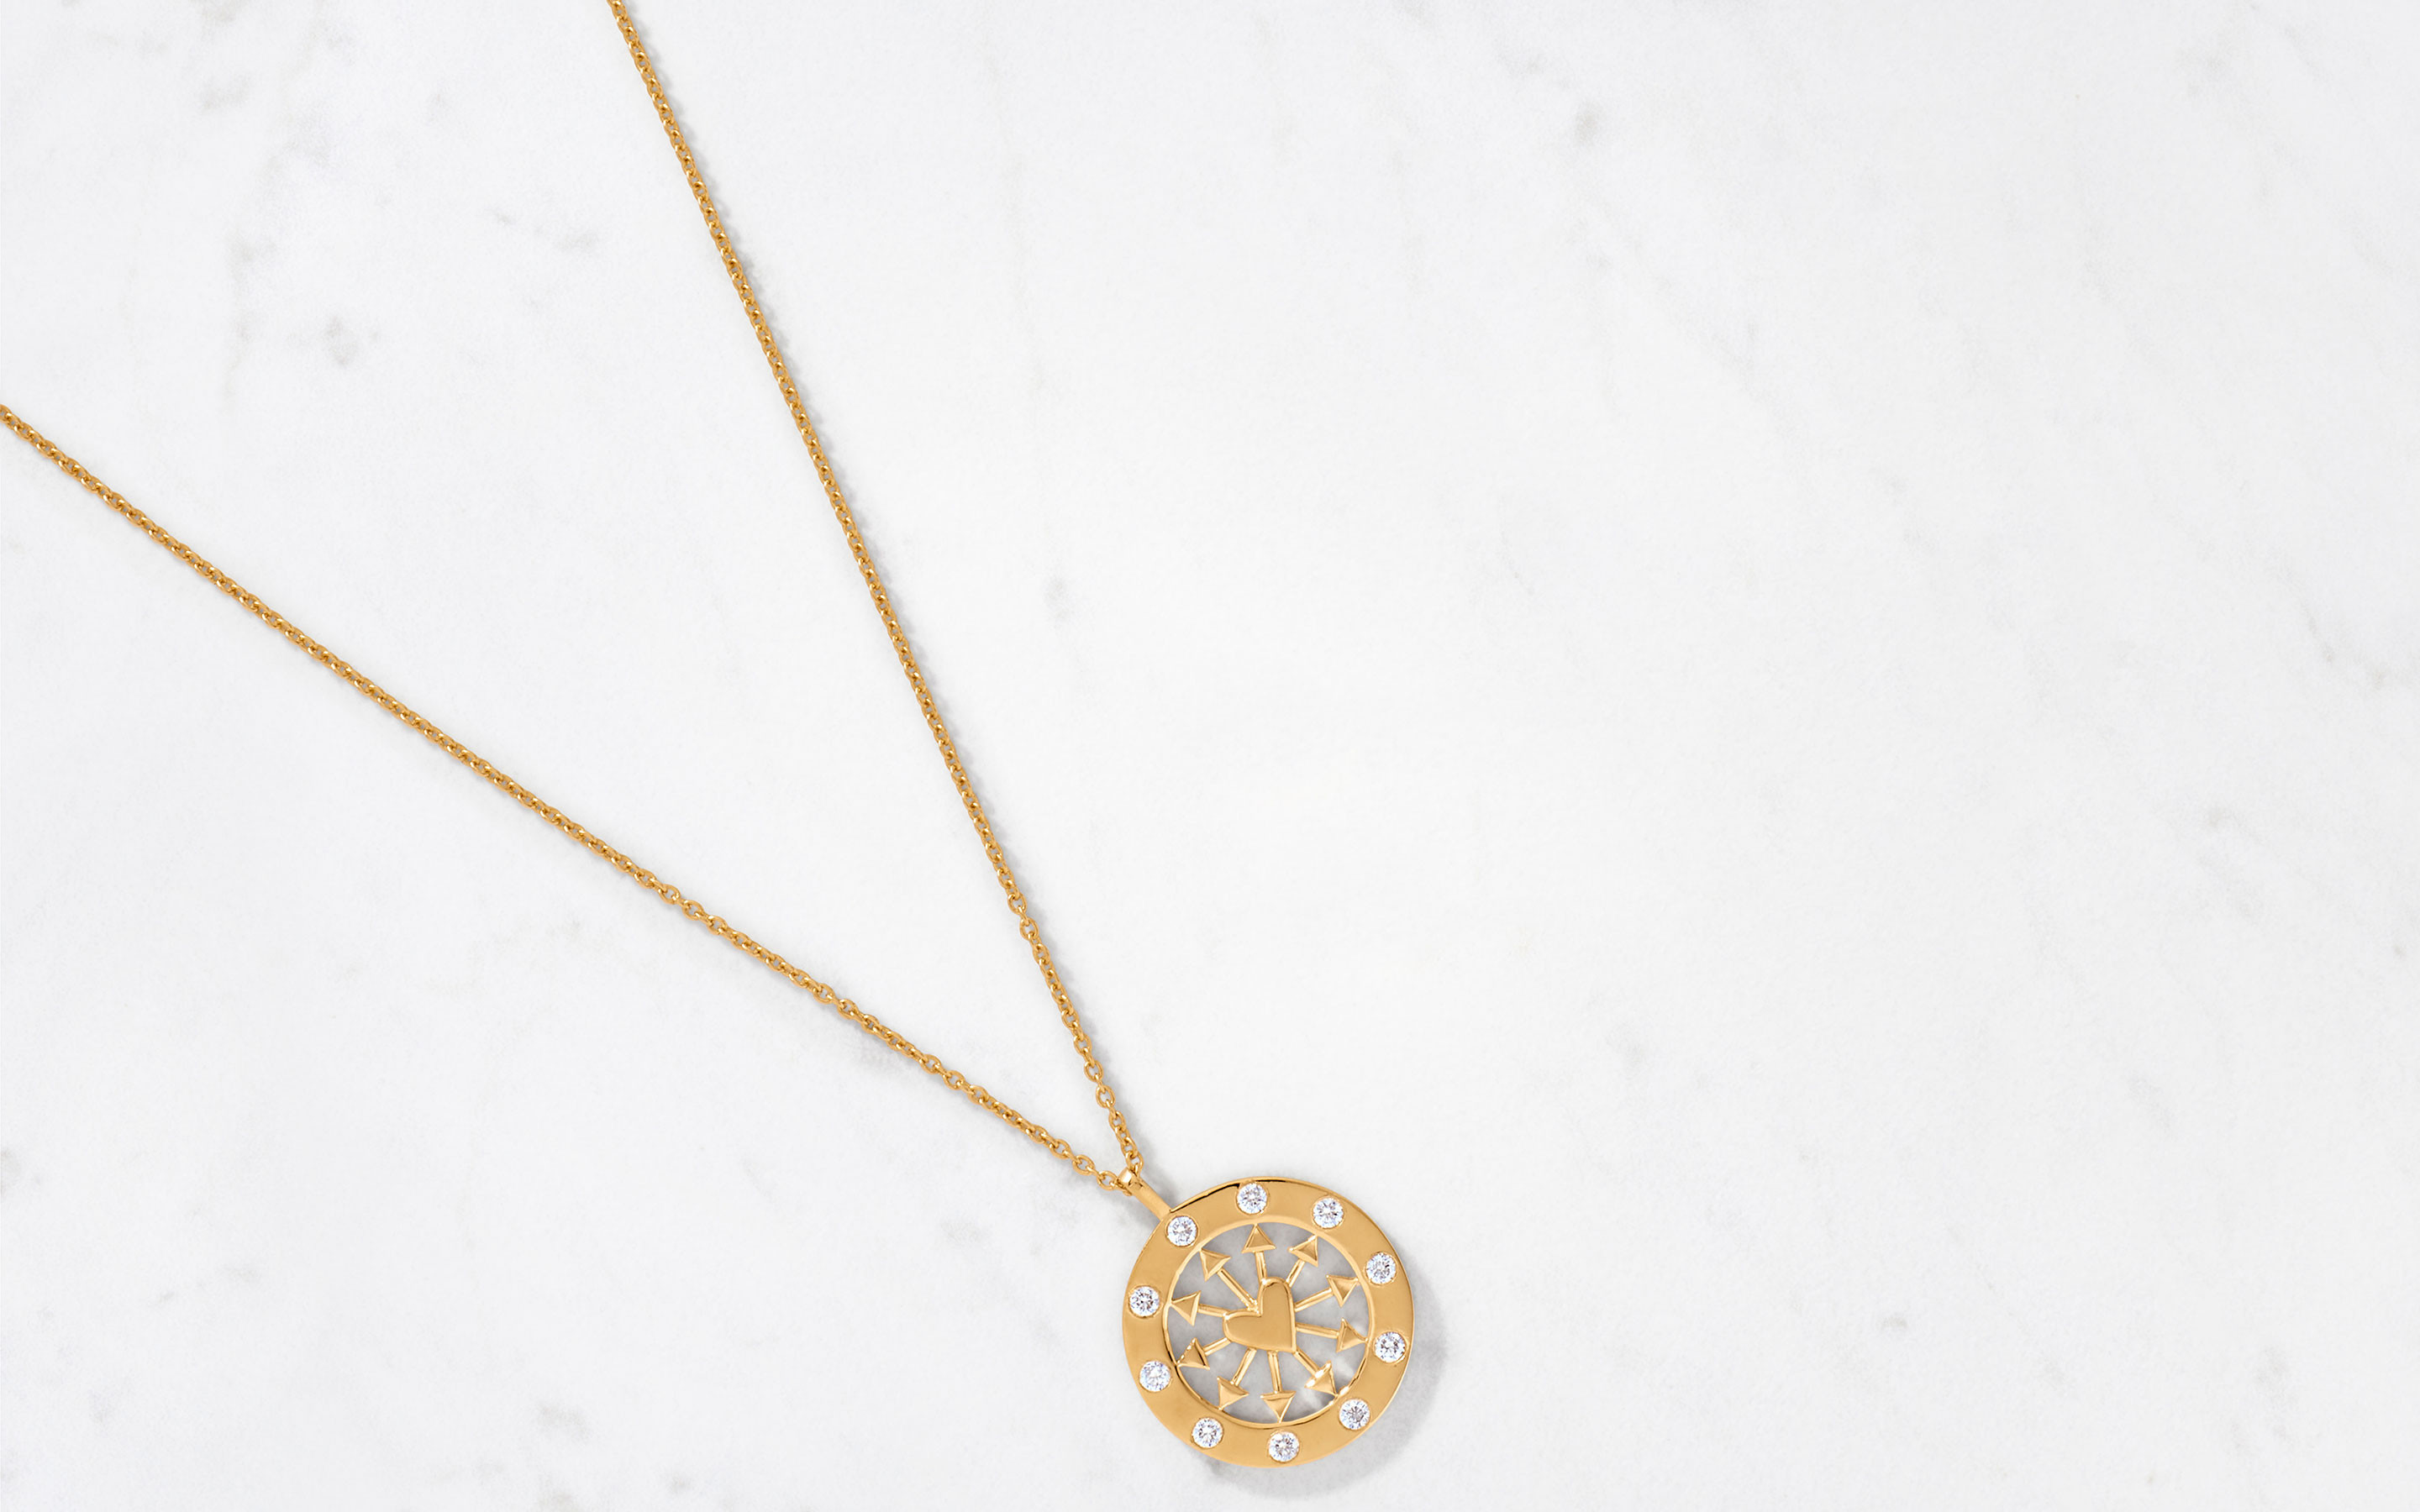 stylish medallion necklace with heart and arrow design made of 22 karat polished gold with round-cut diamonds